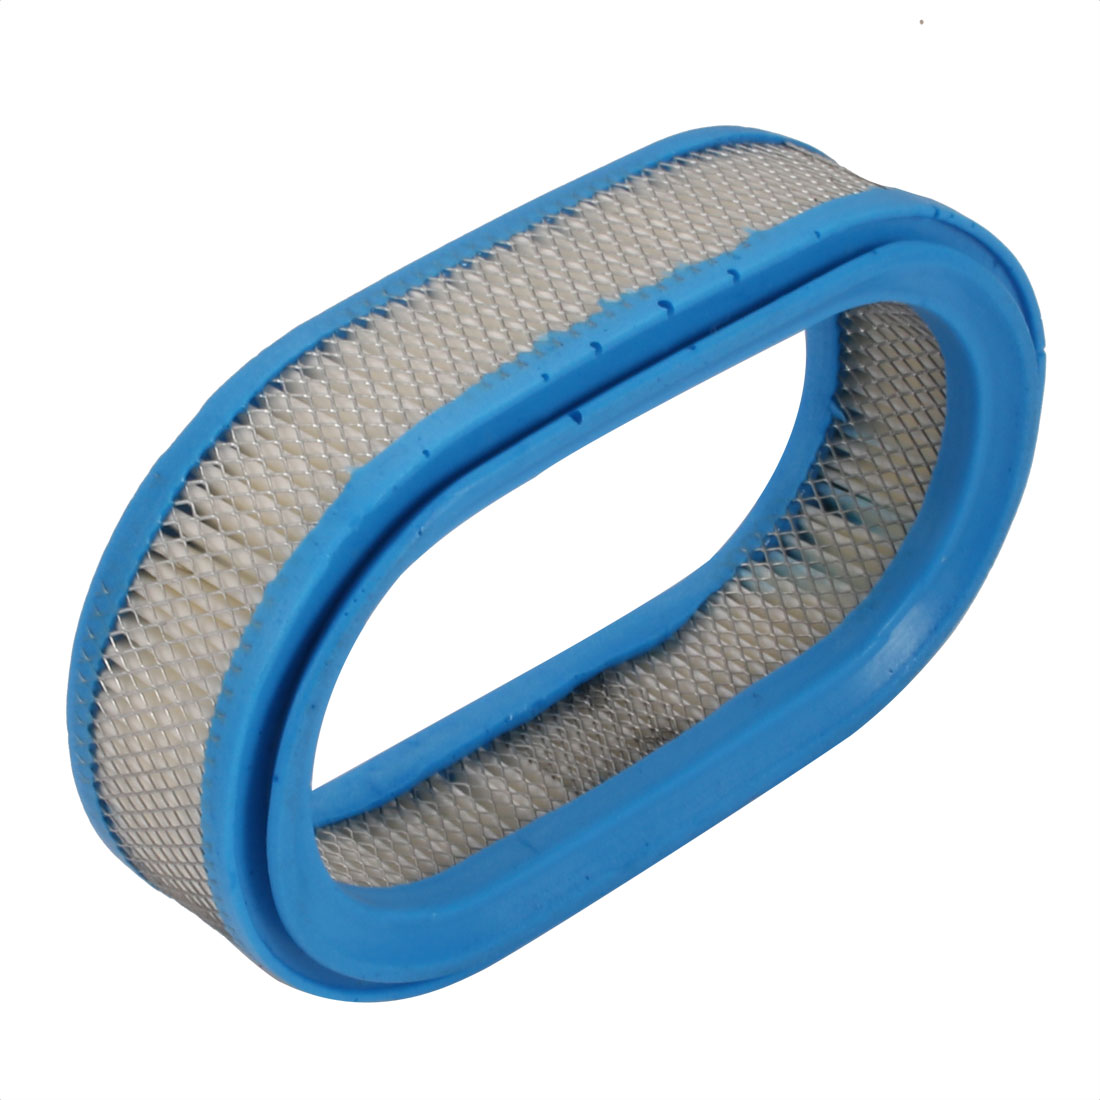 New Replacement Extra Guard Panel Engine Air Filter Cleaner Accessory Blue